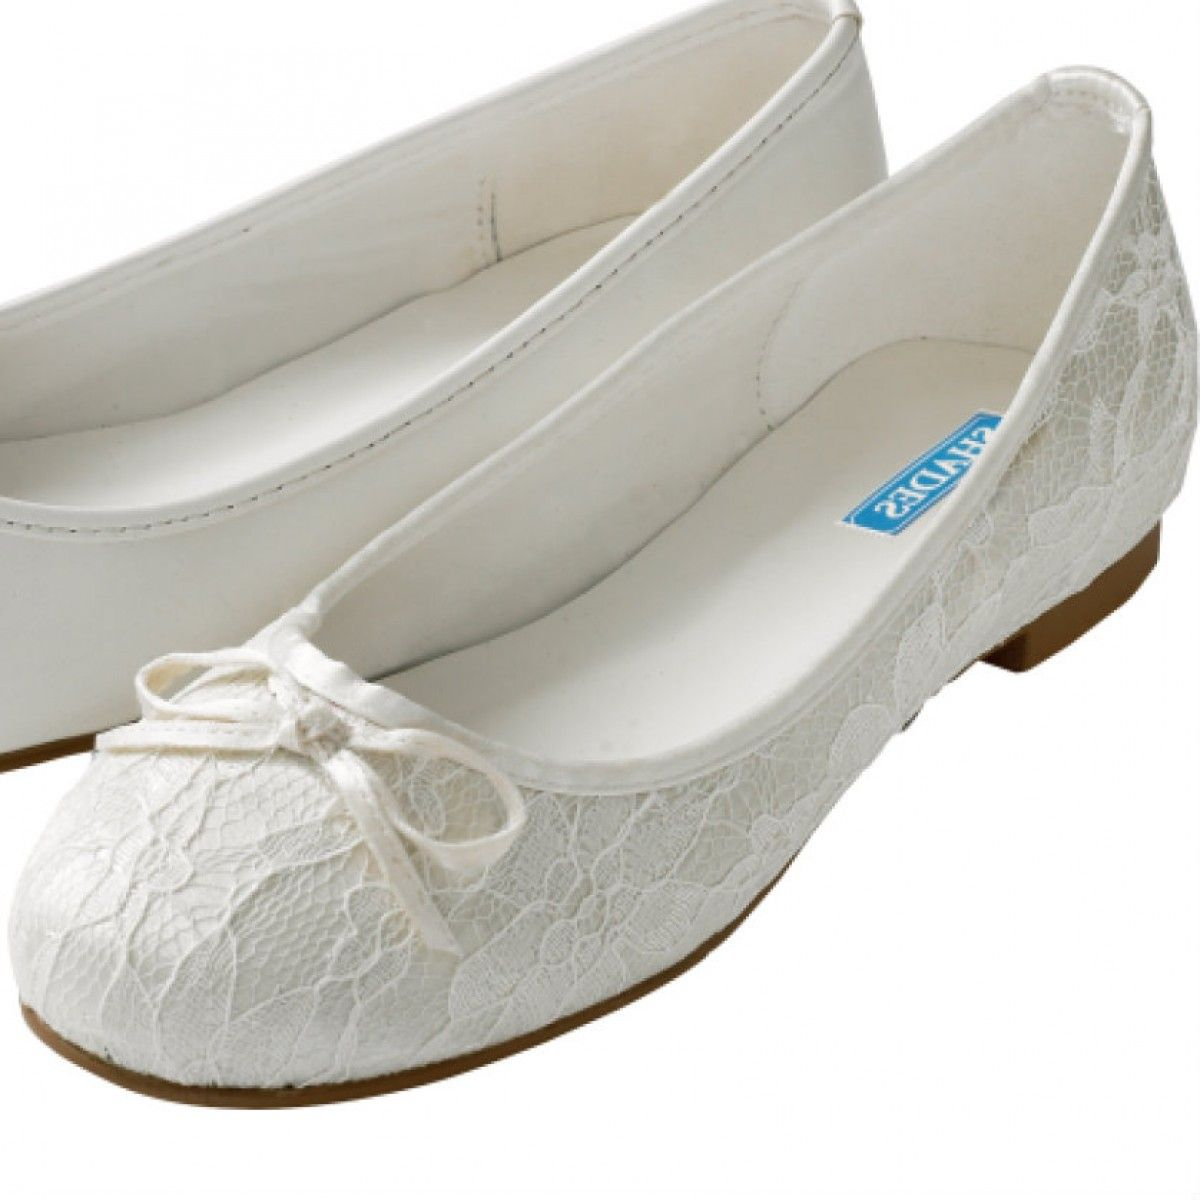 Amanda 909 By Shades Ivory Lace Vintage Flat Wedding Or Occasion Shoes